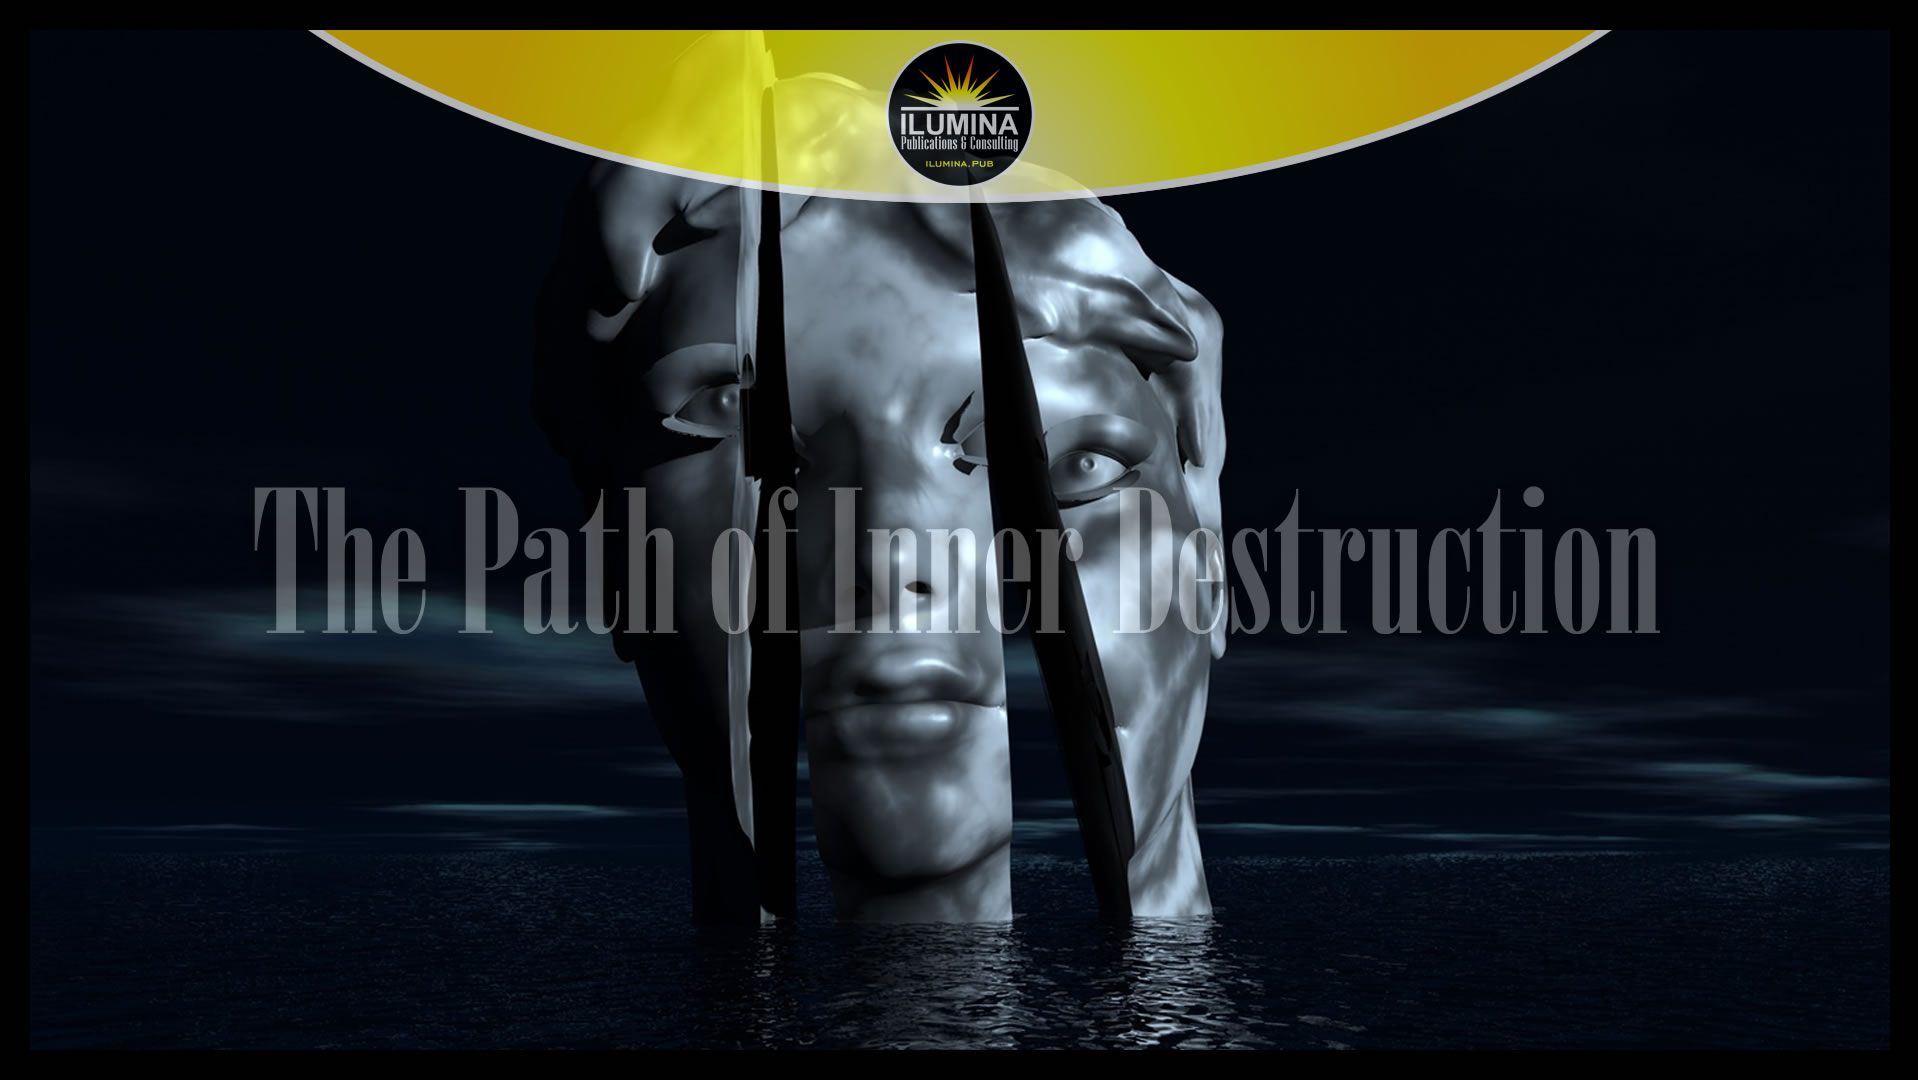 The Path of Inner Destruction